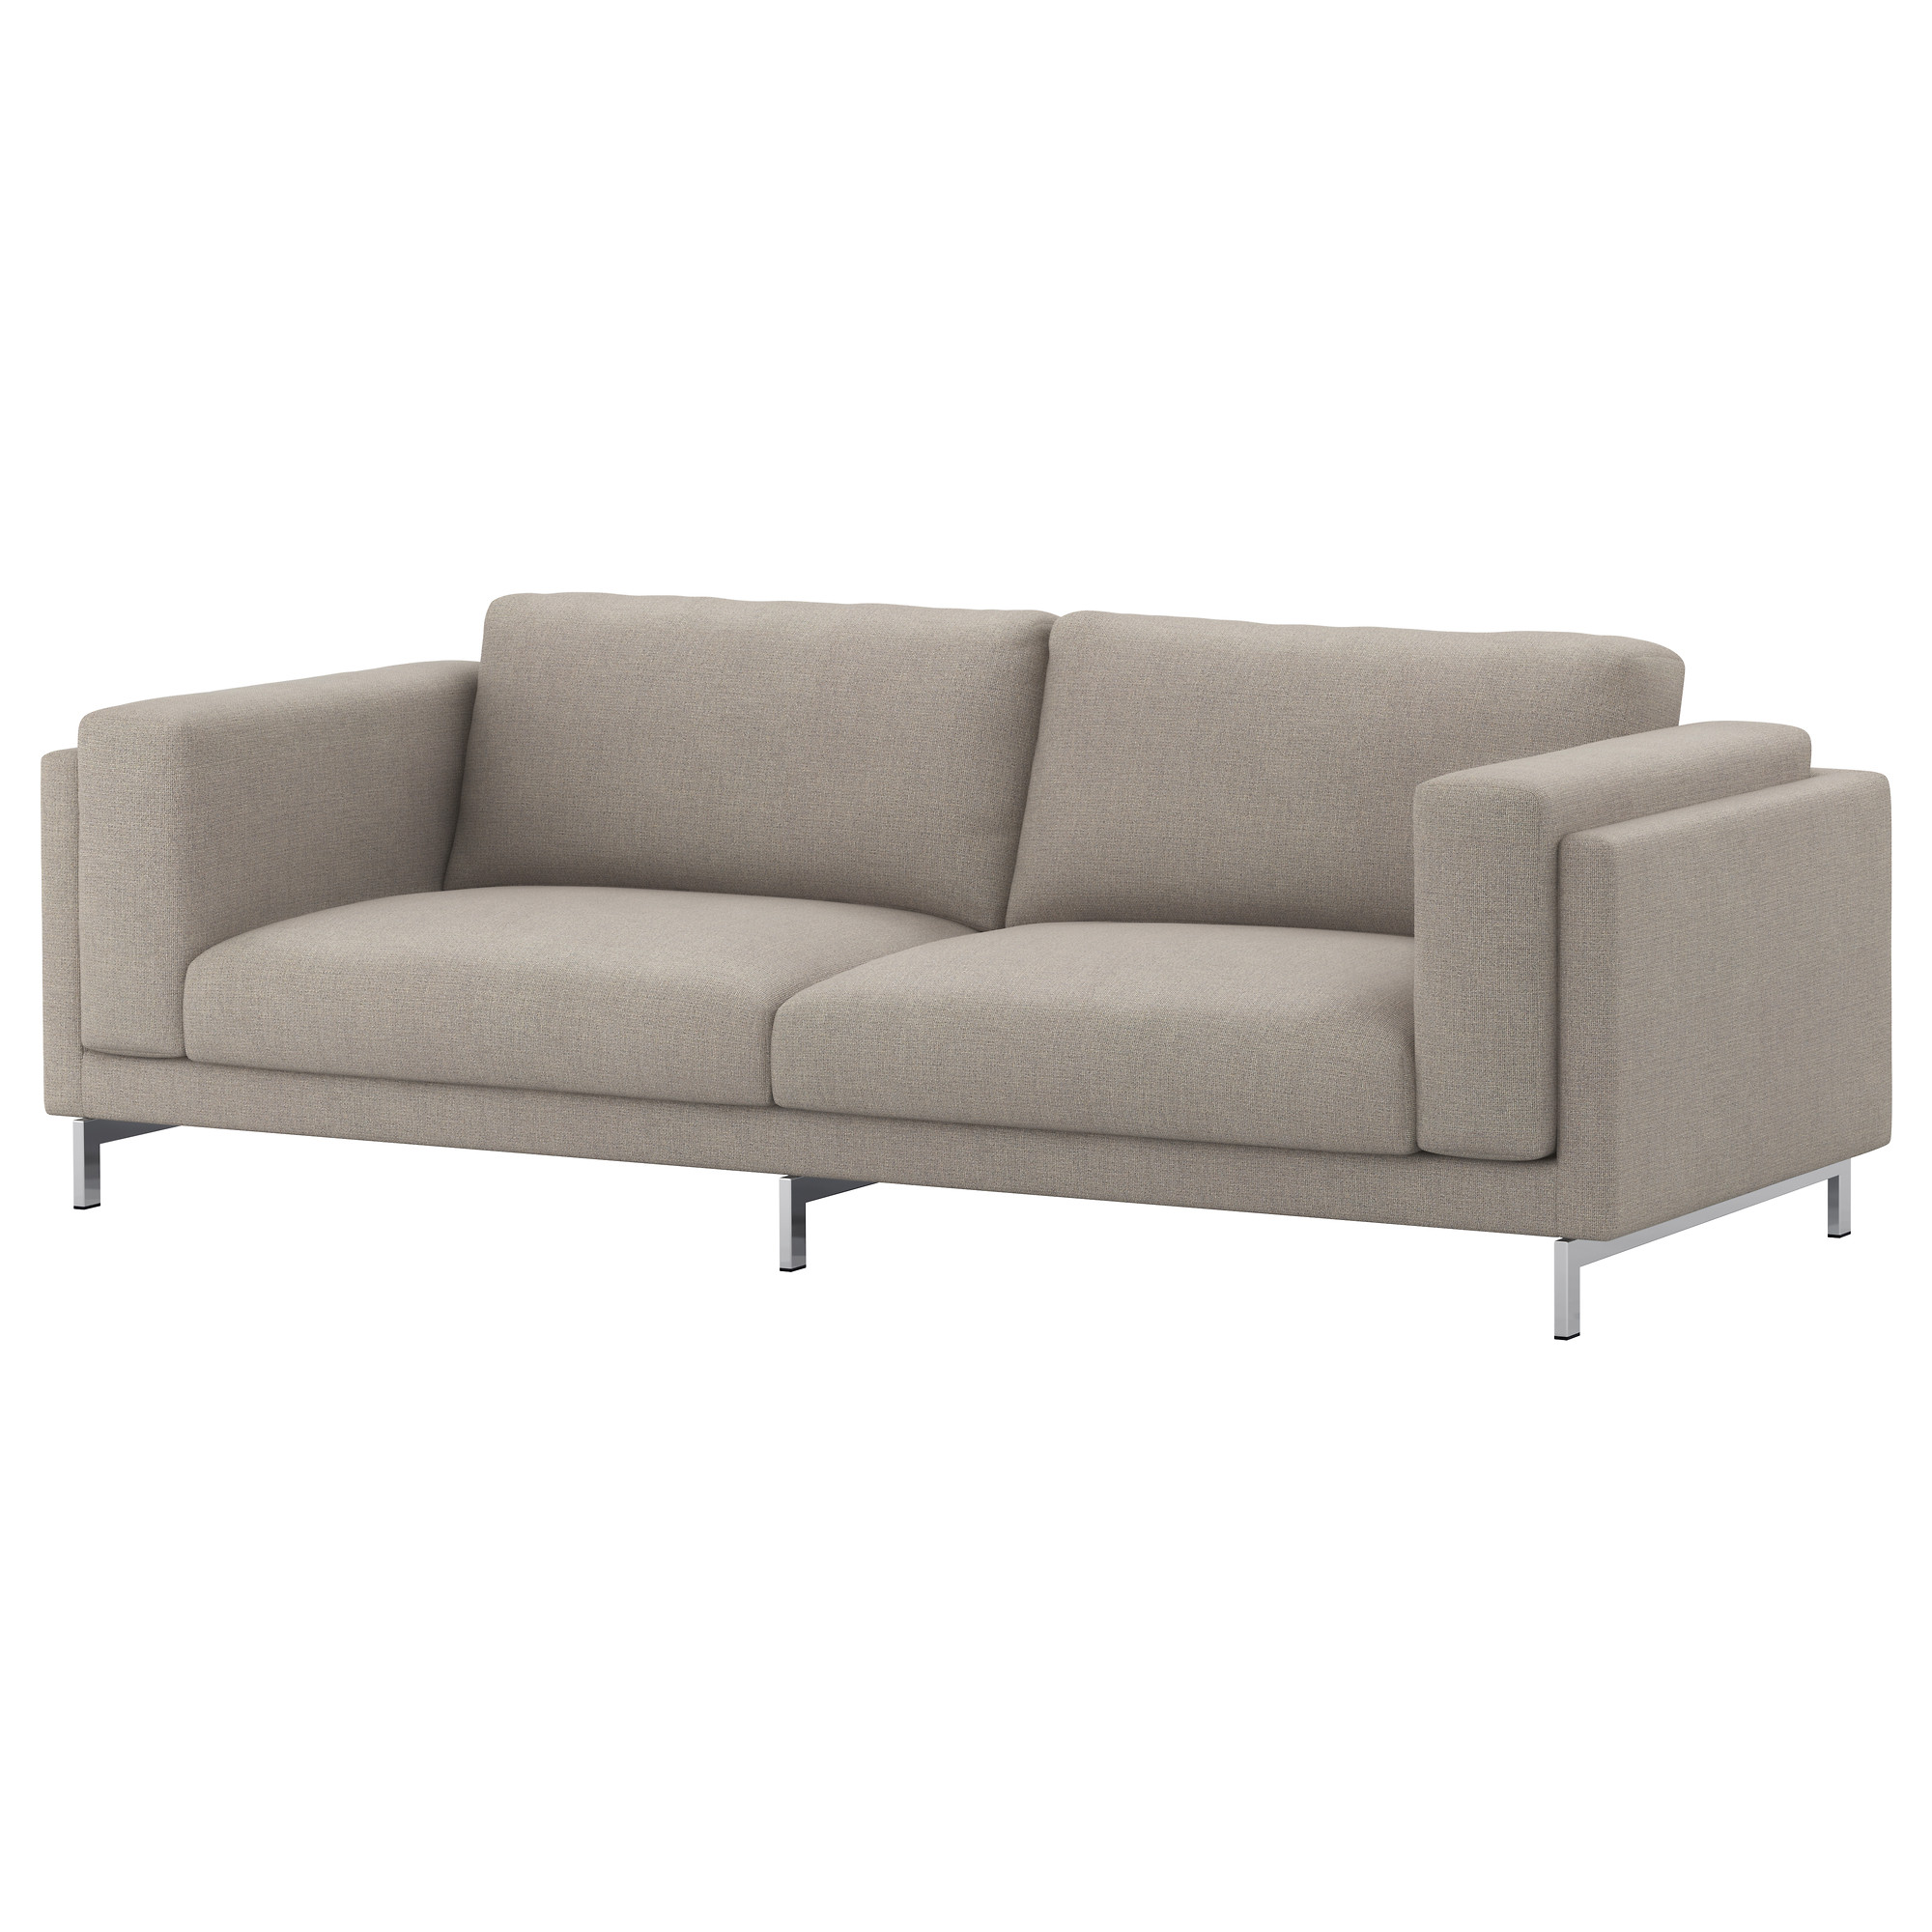 NOCKEBY Sofa cover Tenö light gray IKEA